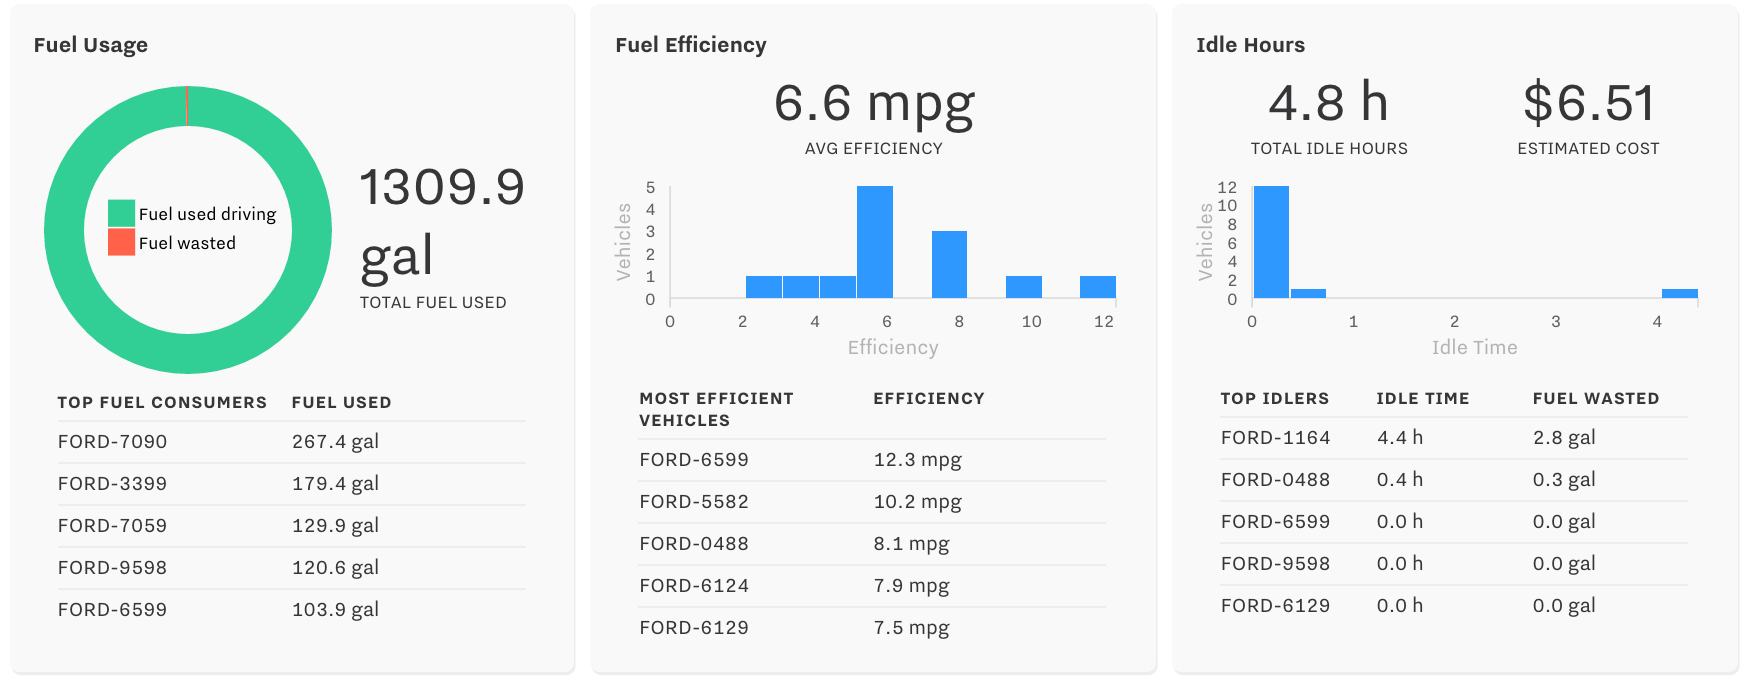 Fleet Summary Report charts fuel efficiency